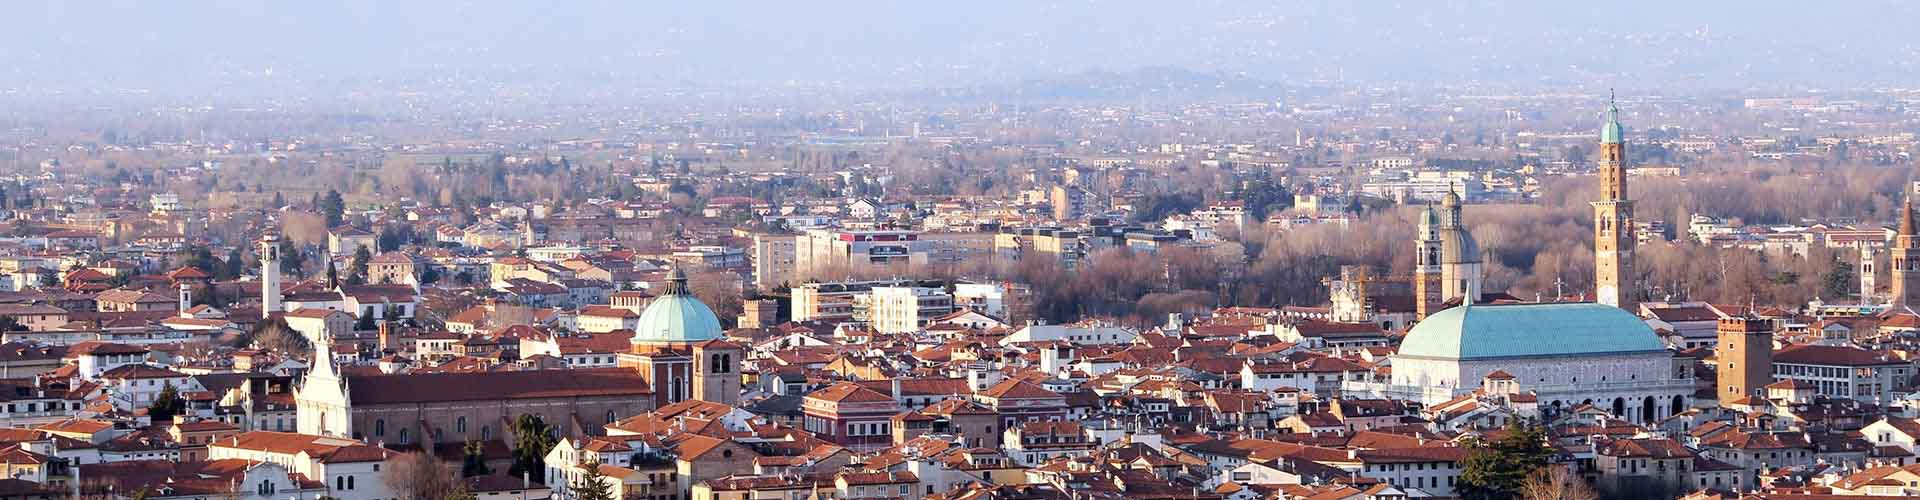 Vicenza – Hostels in Vicenza. Maps for Vicenza, Photos and Reviews for each hostel in Vicenza.